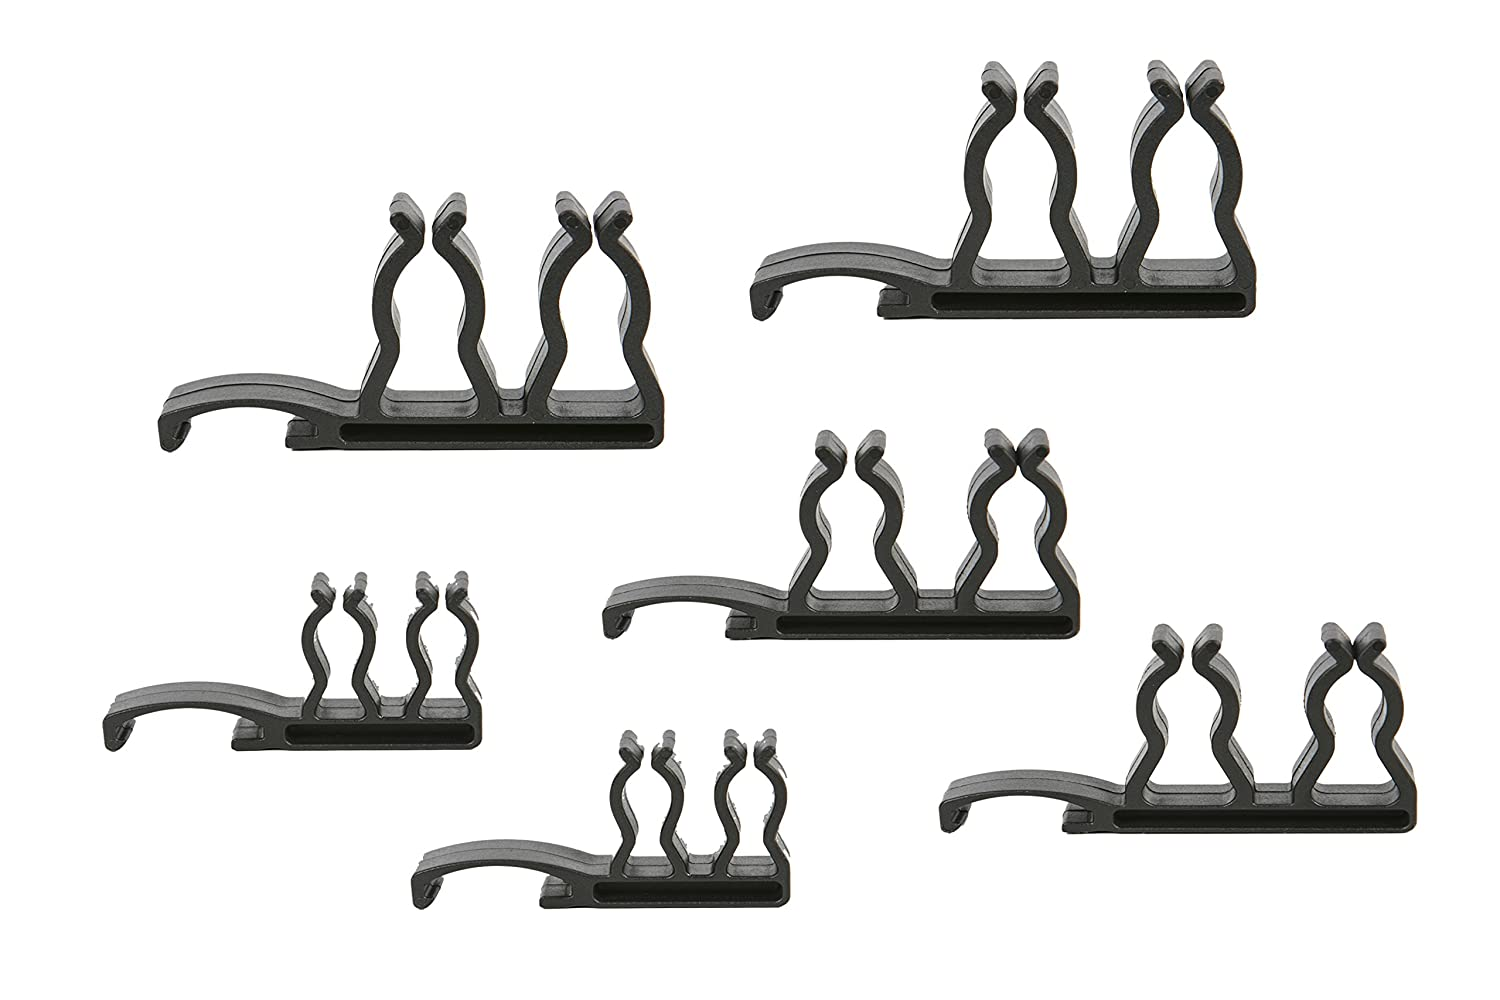 Olsa Tools Dual 1 4 3 8 1 2 Side Mount Ratchet Extension Holders | 6 Pc Set 2Pc of each size |Holds 6 Ratchets or Extensions| To Be Used on Socket Rails